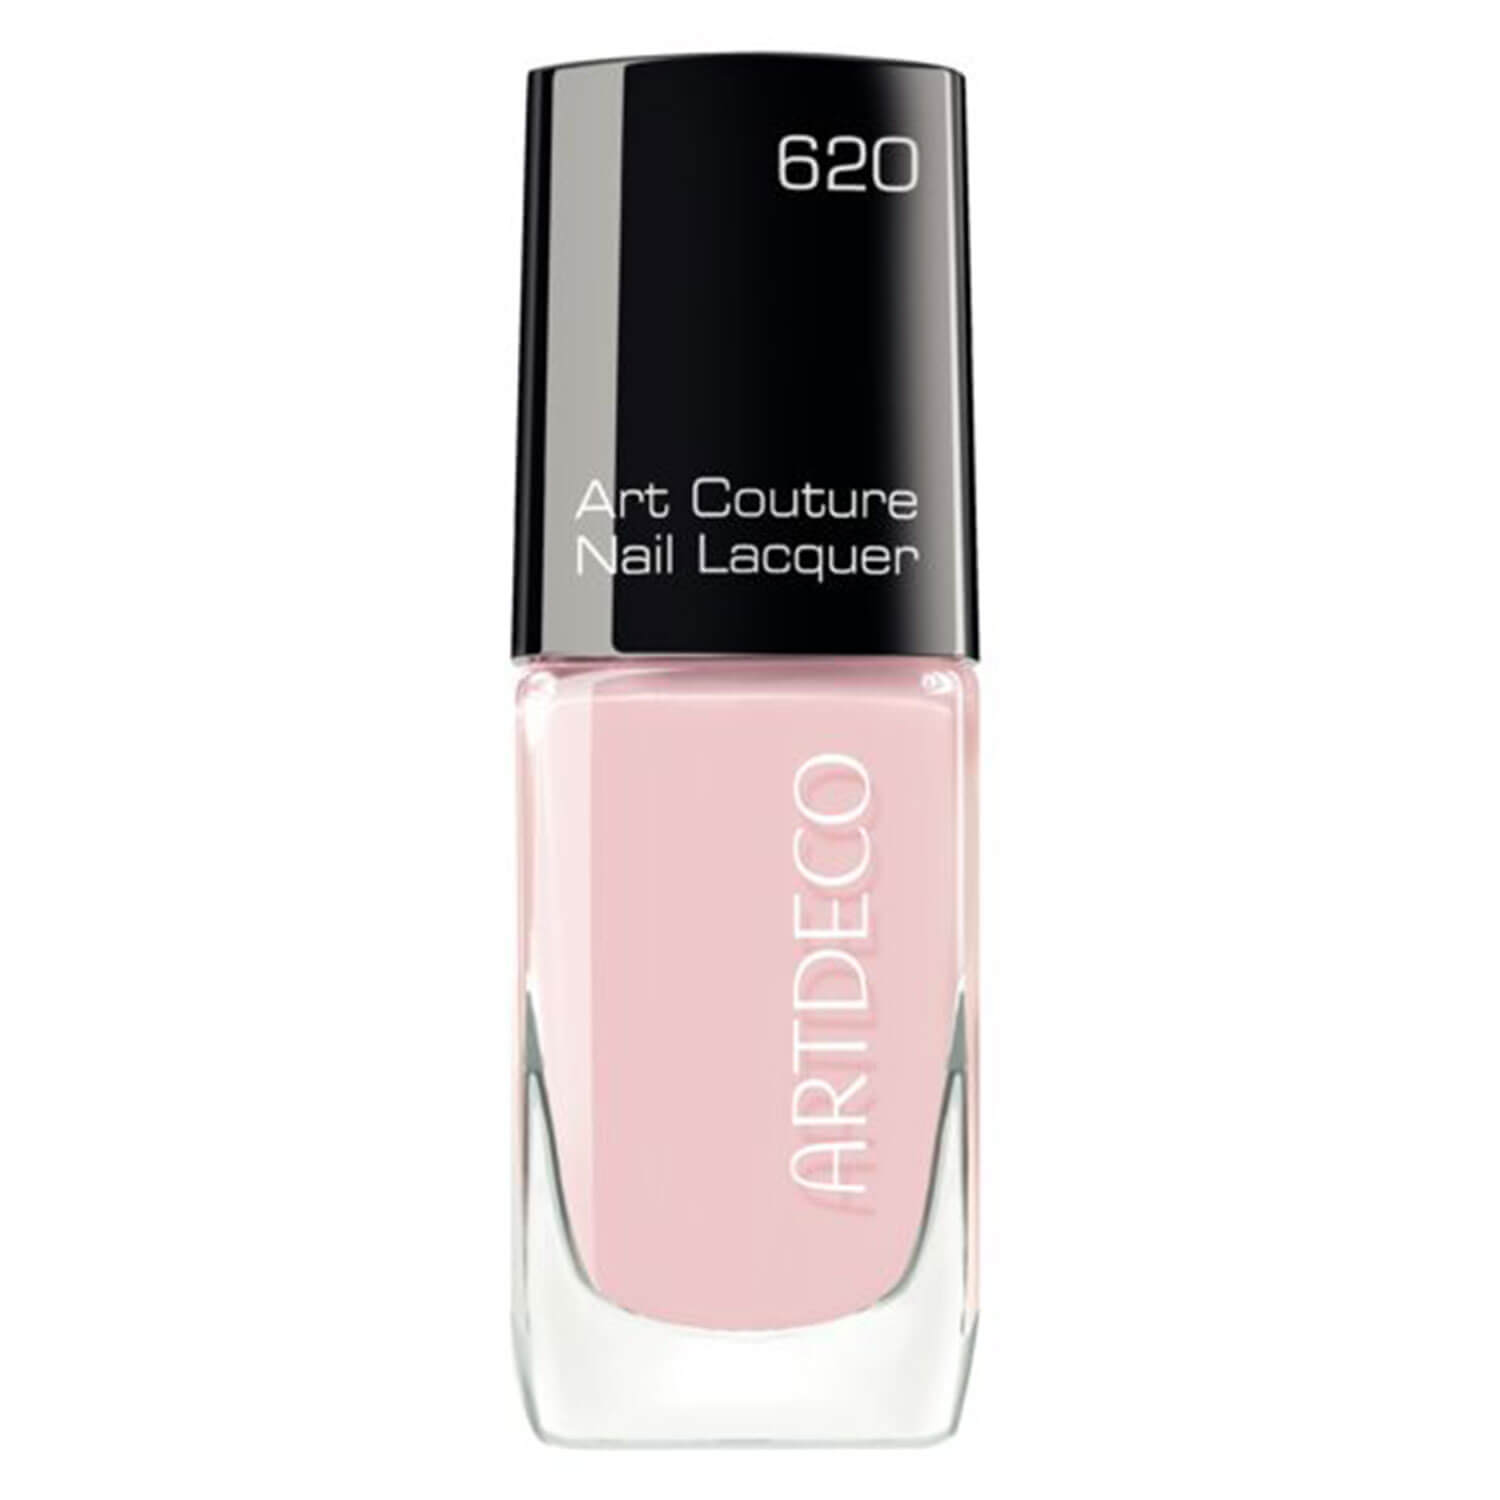 Art Couture - Nail Lacquer Sheer Rose 620